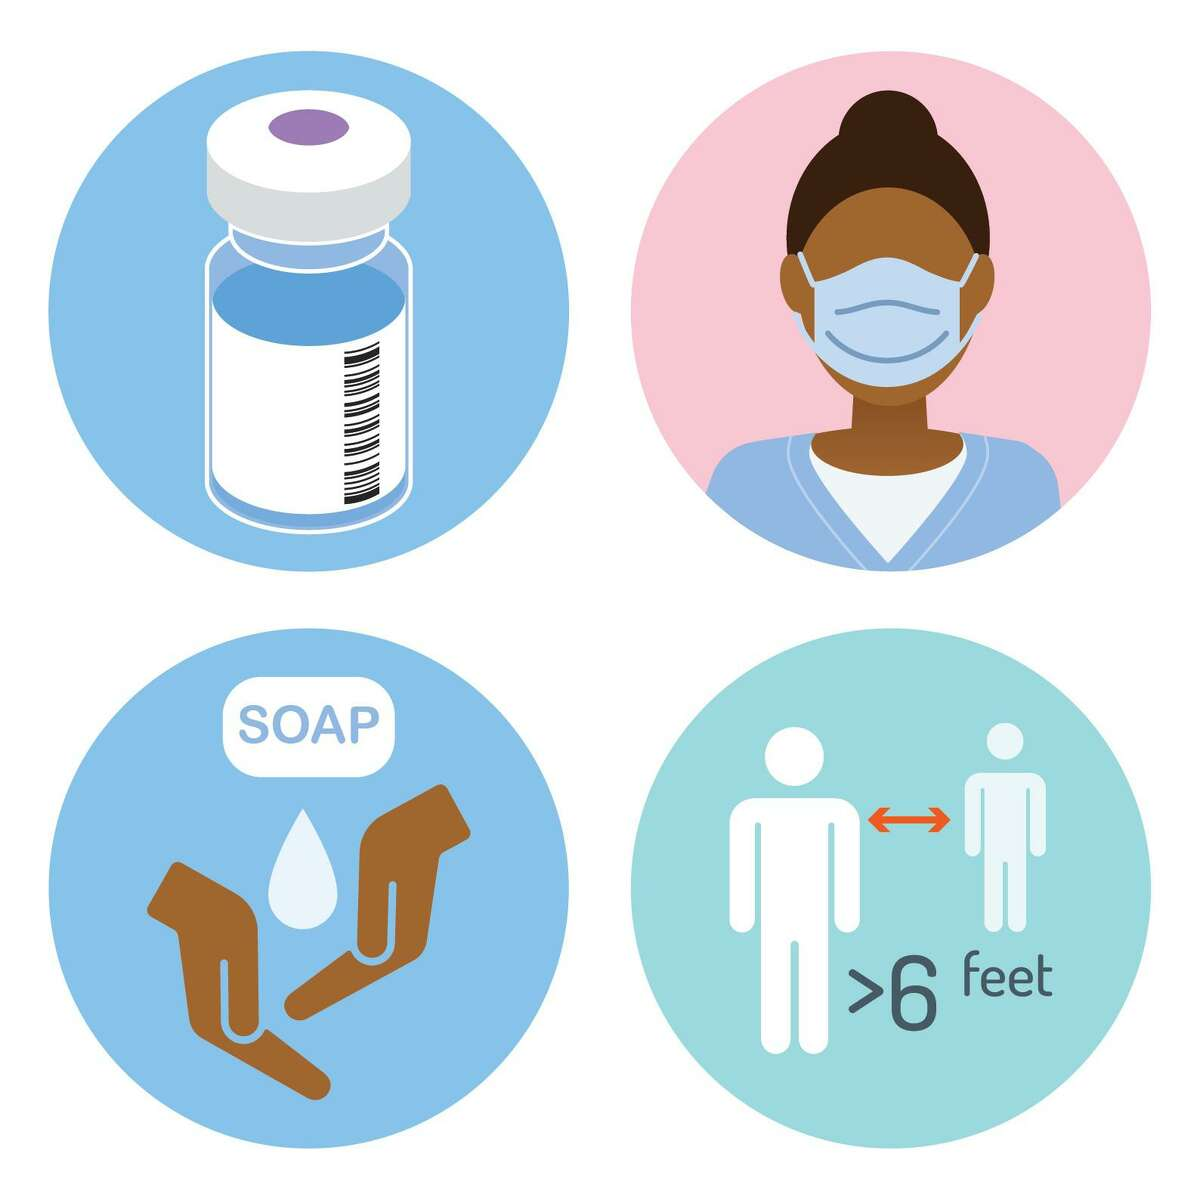 The Centers for Disease Control recommends vaccinations, wearing masks, washing hands and maintaining social distance in the fight to stop COVID-19.